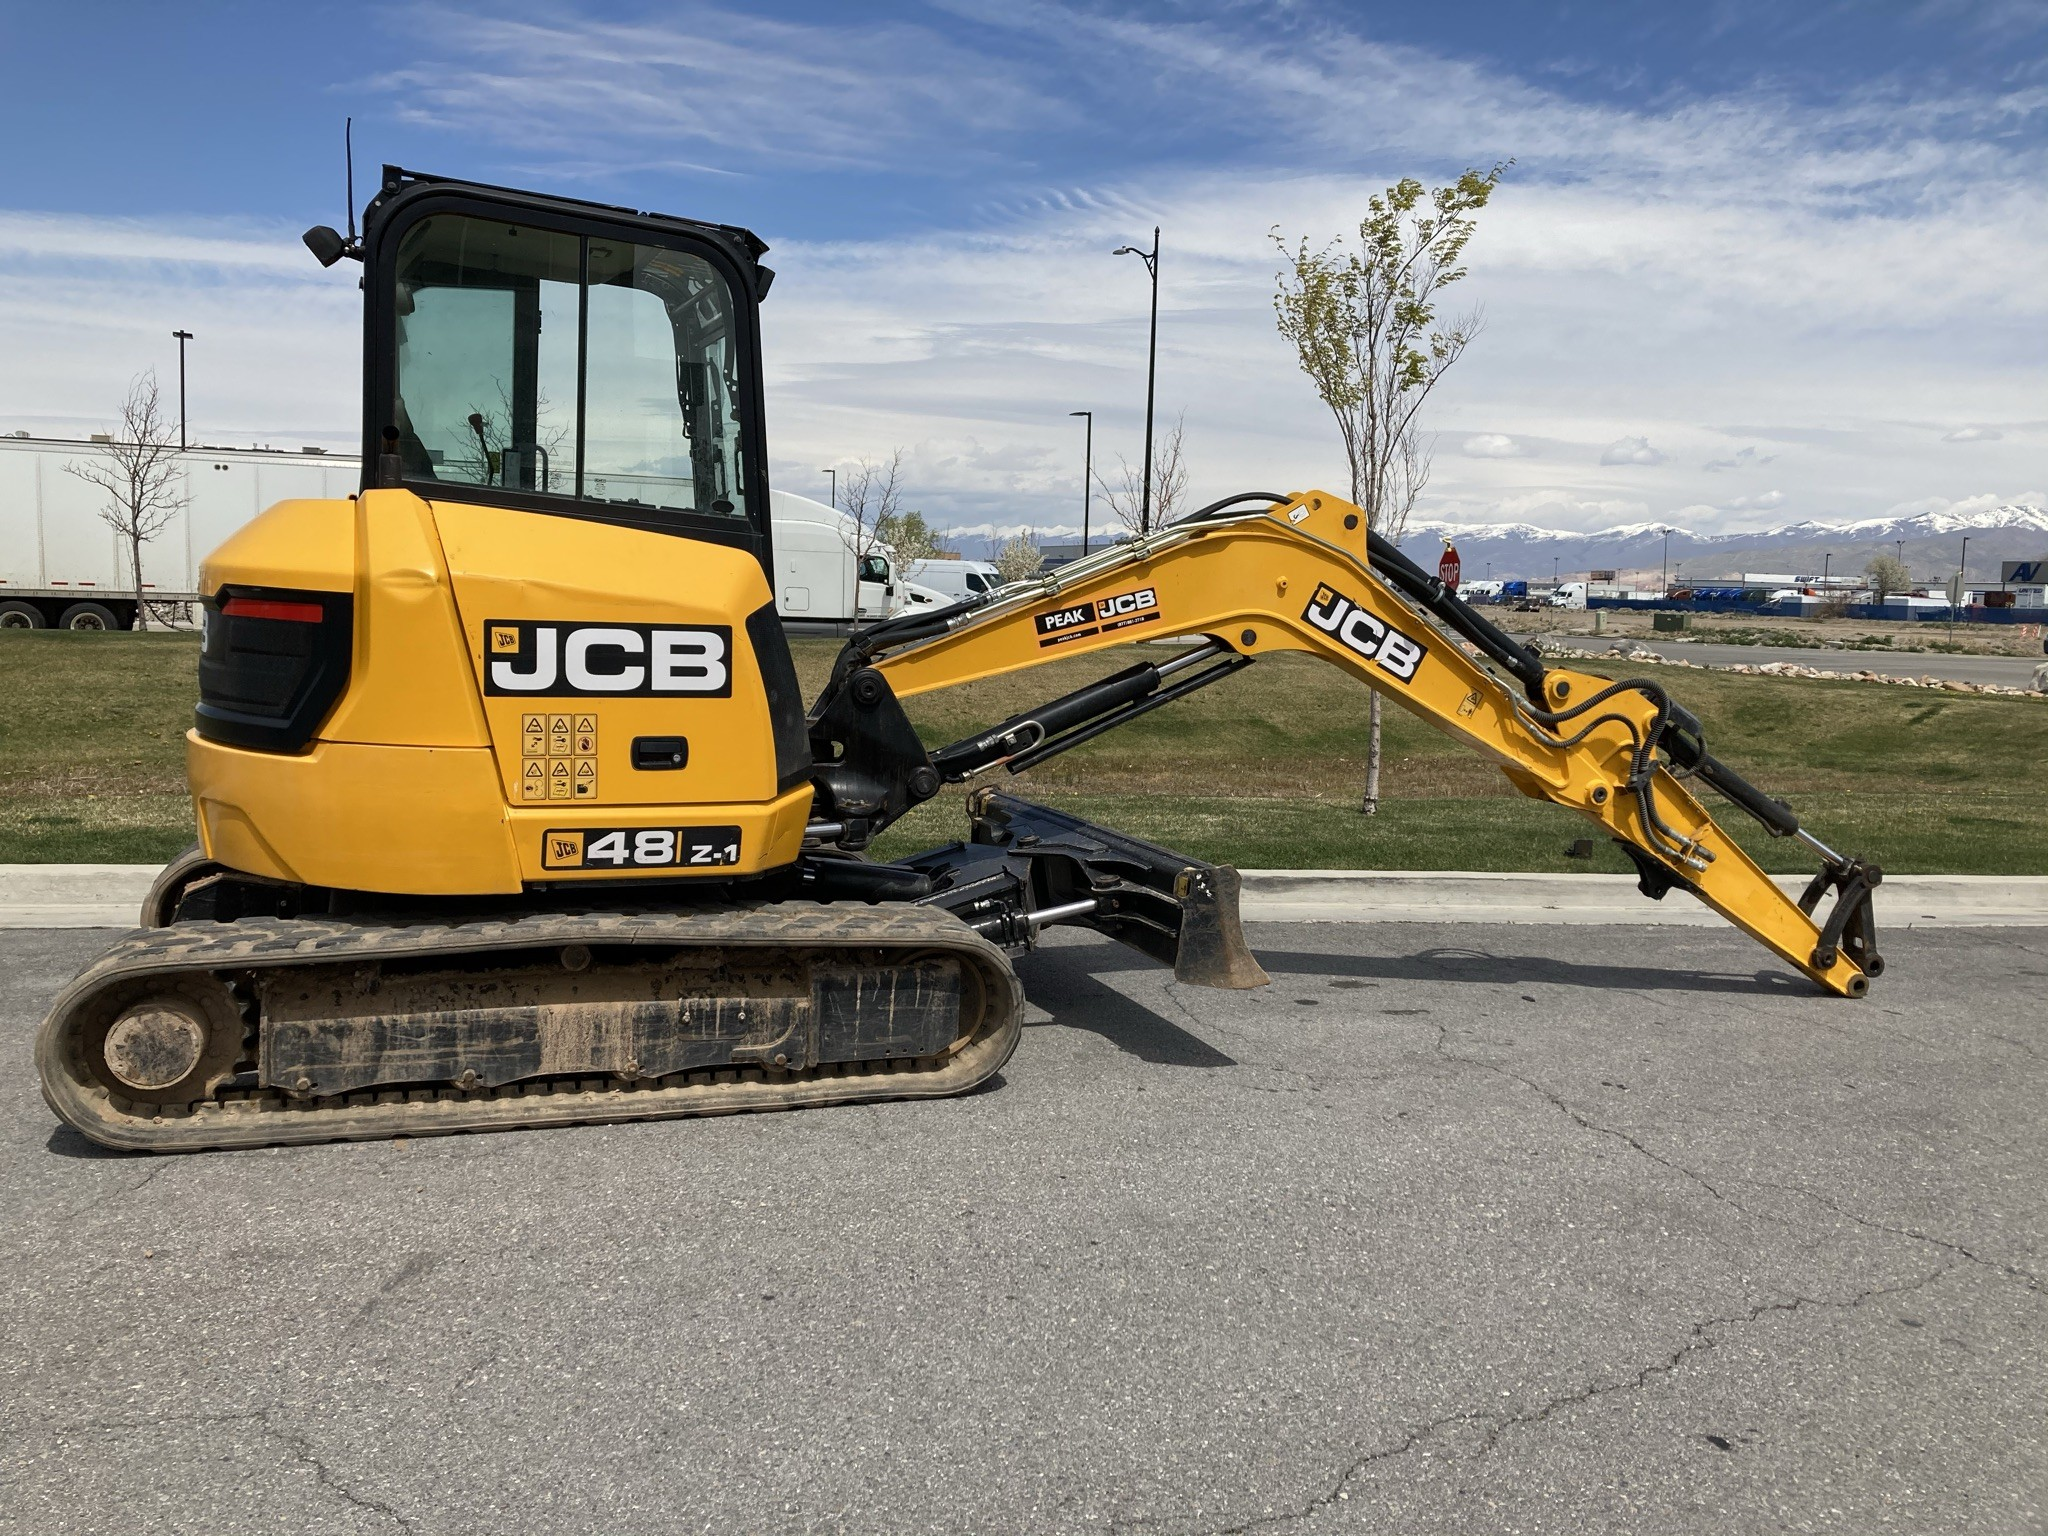 Used, 2016, JCB, 48Z-1, Excavators